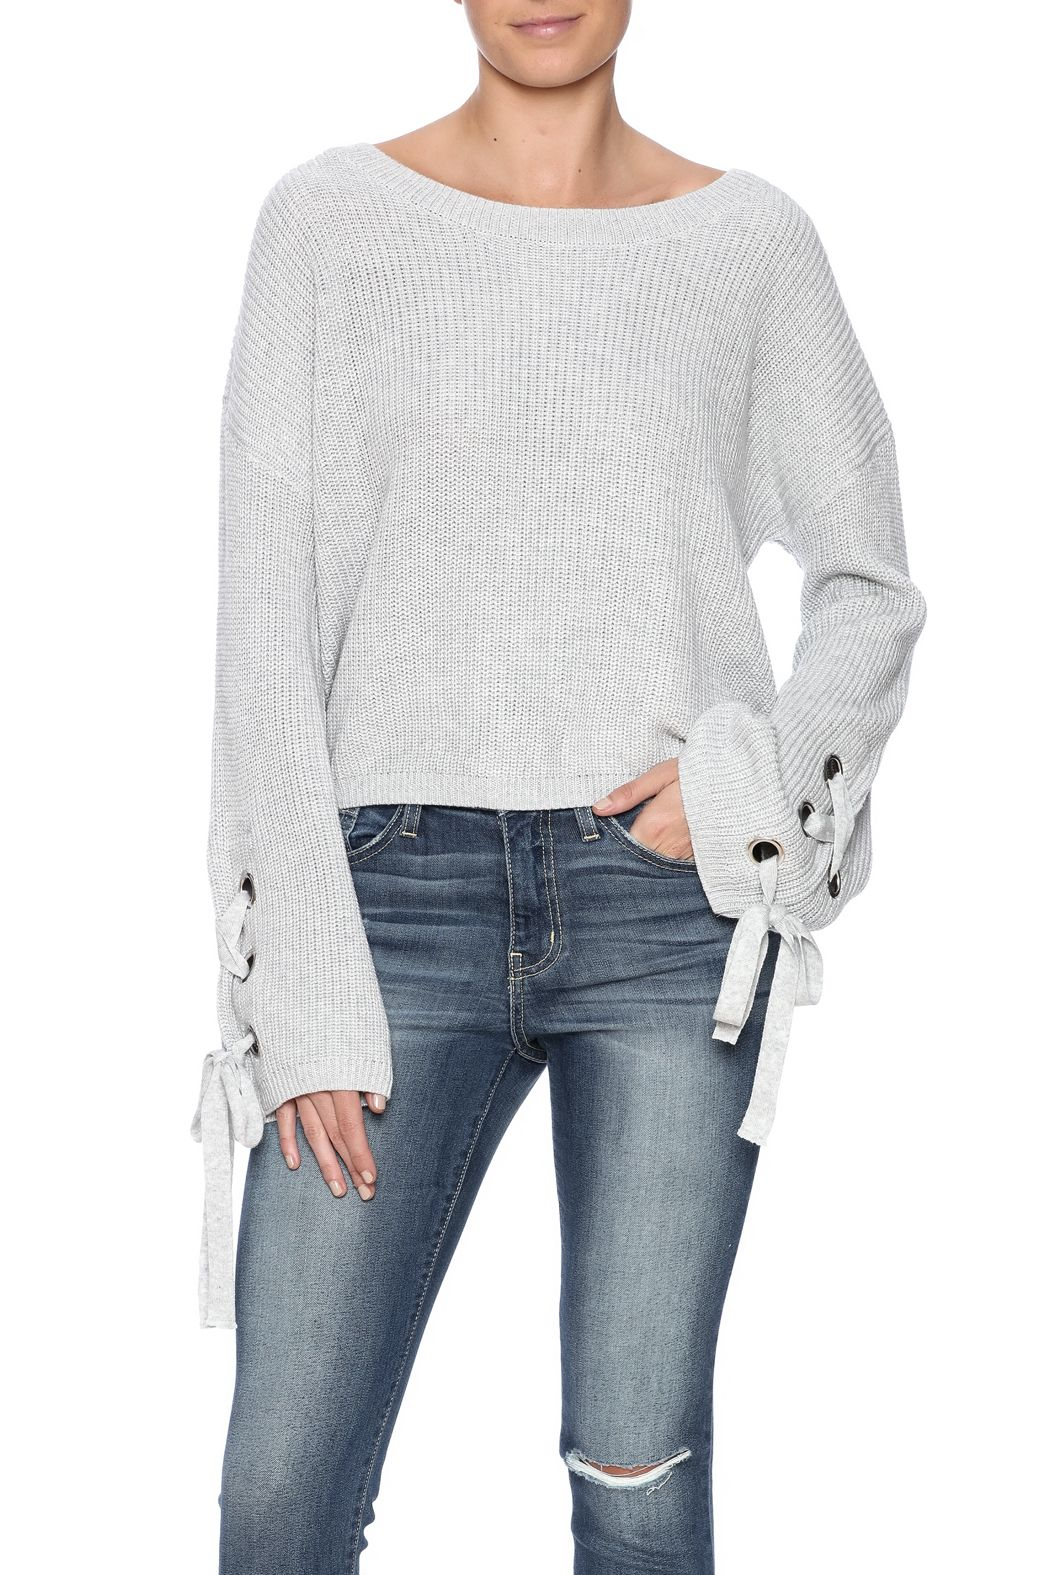 b30f916776d31d Light grey sweater with long sleeves boat neckline and grommet lace up  detailing. Tie Sleeve